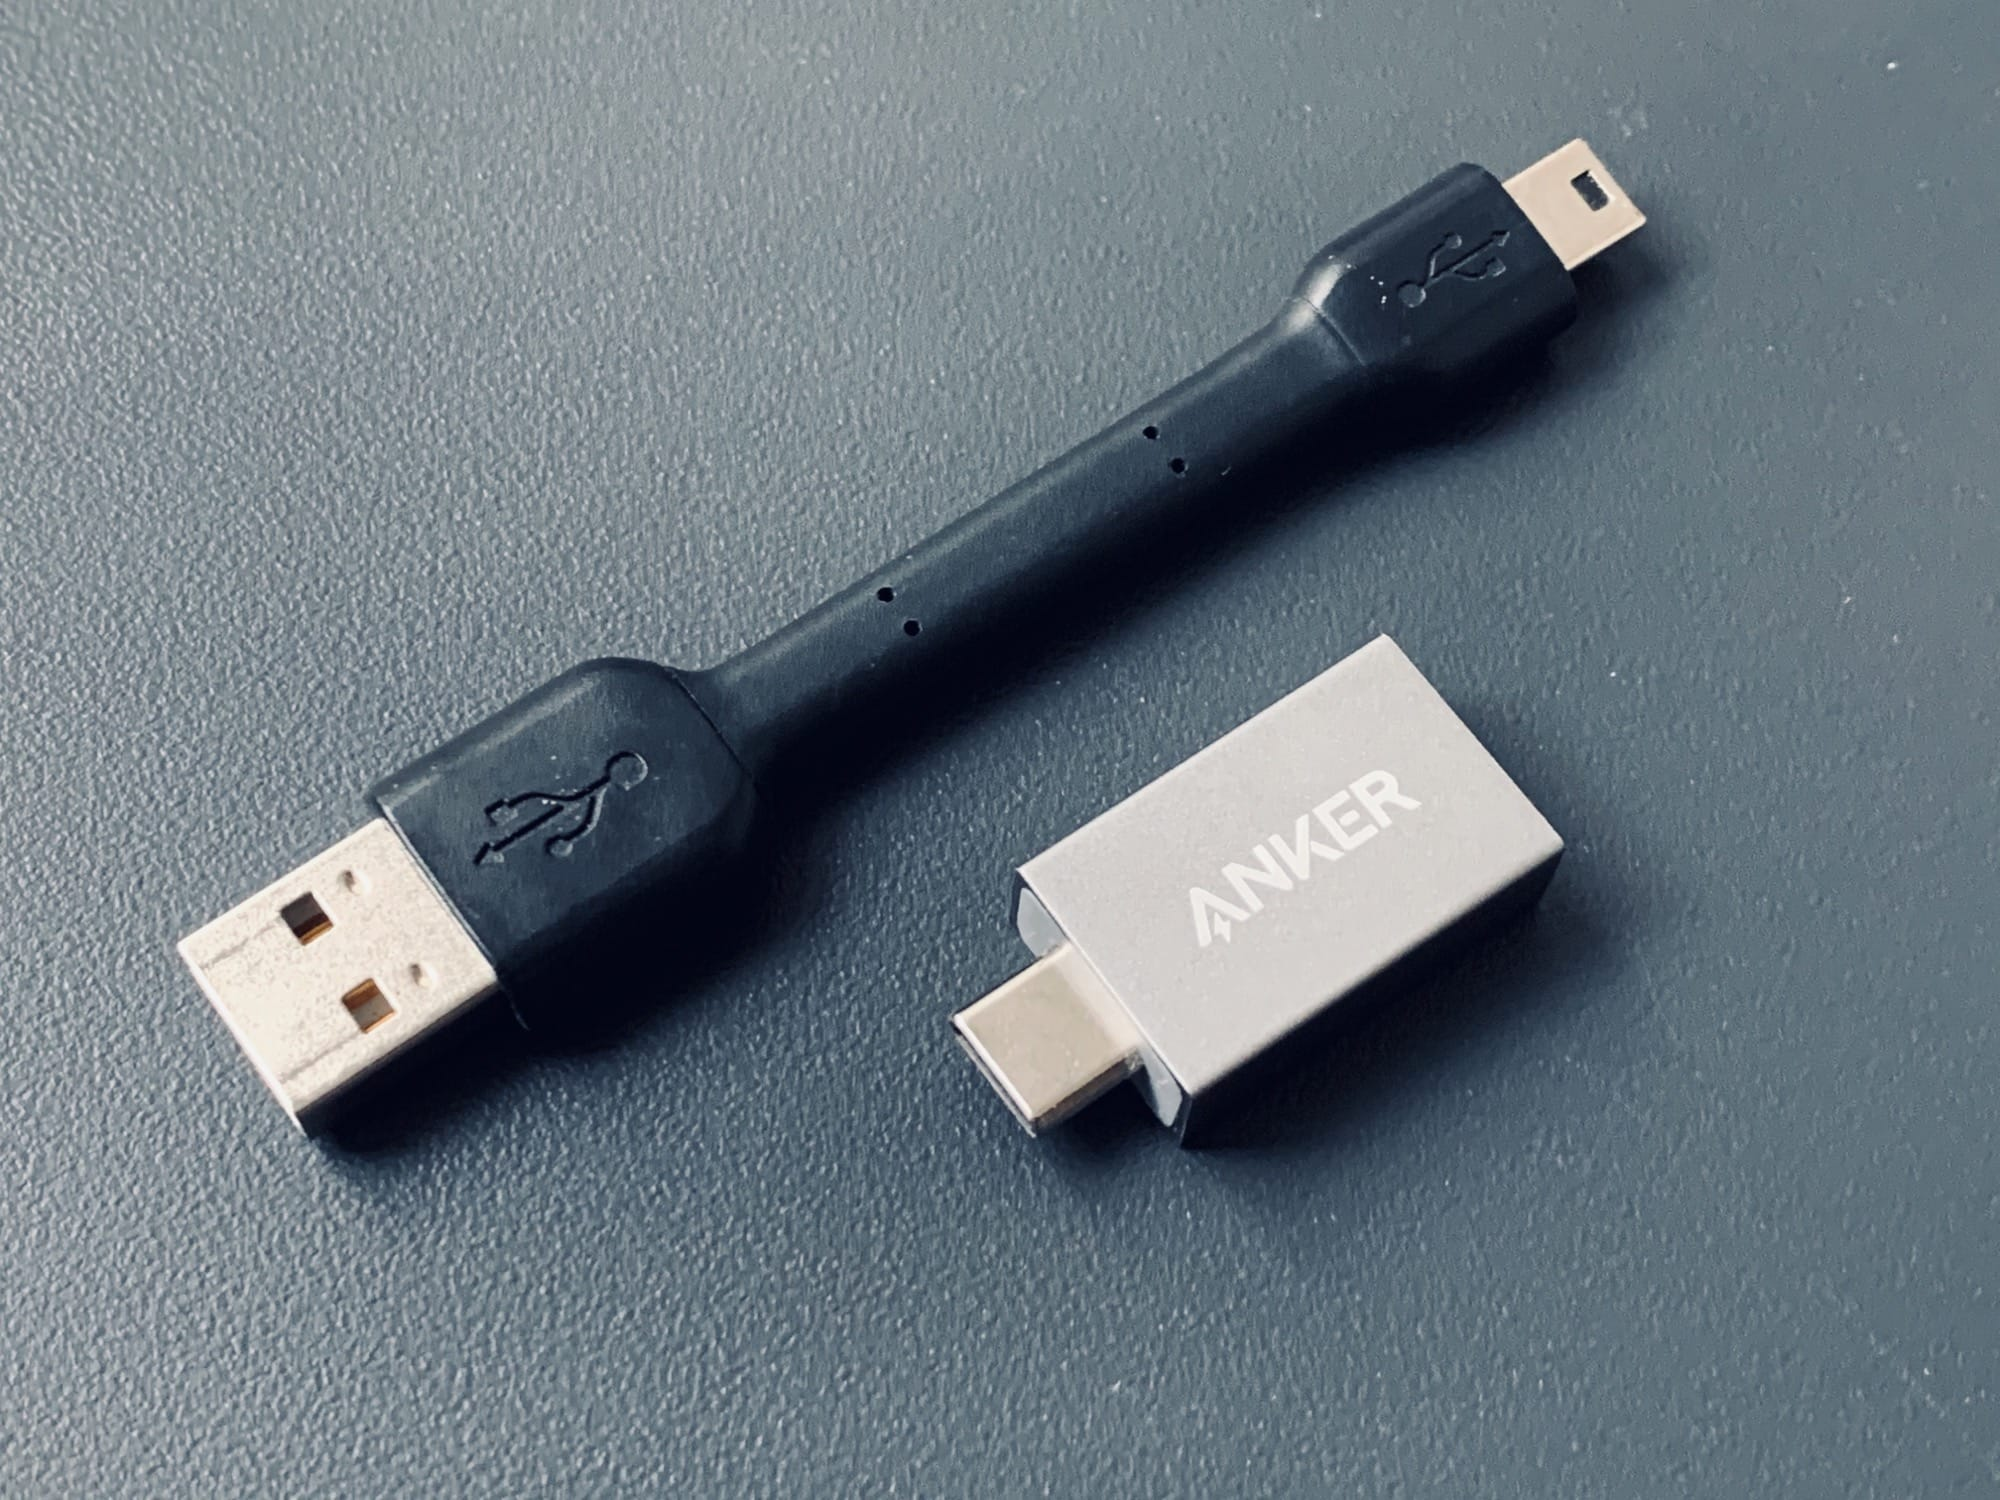 The Anker USB-C to USB-A Female Adapter is truly tiny.